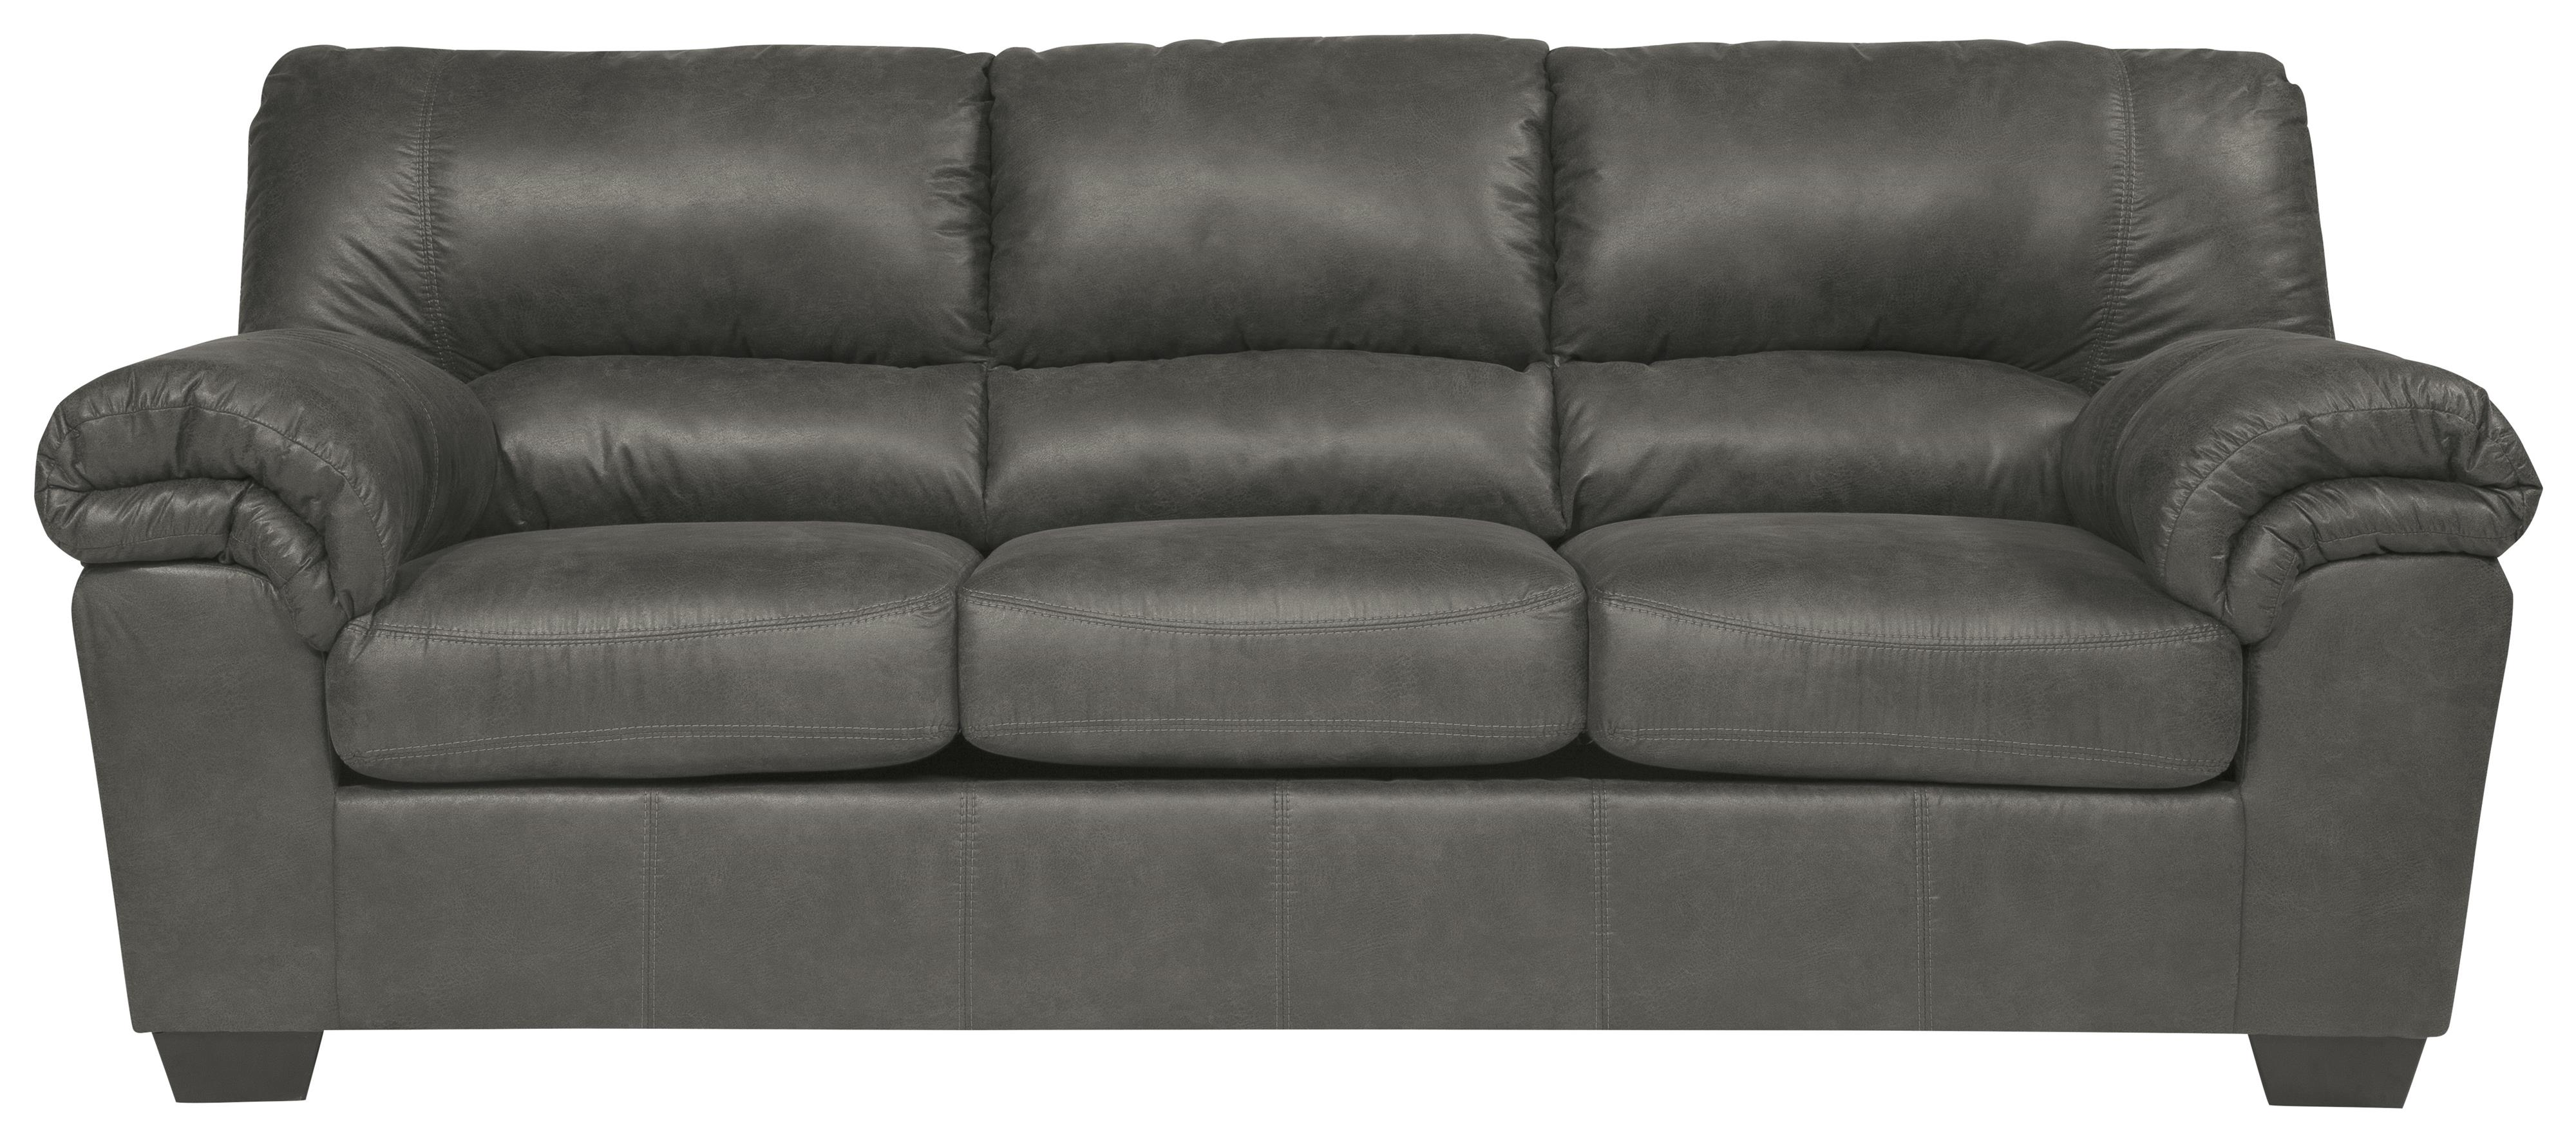 Bladen Sofa by Signature Design by Ashley at Zak's Warehouse Clearance Center